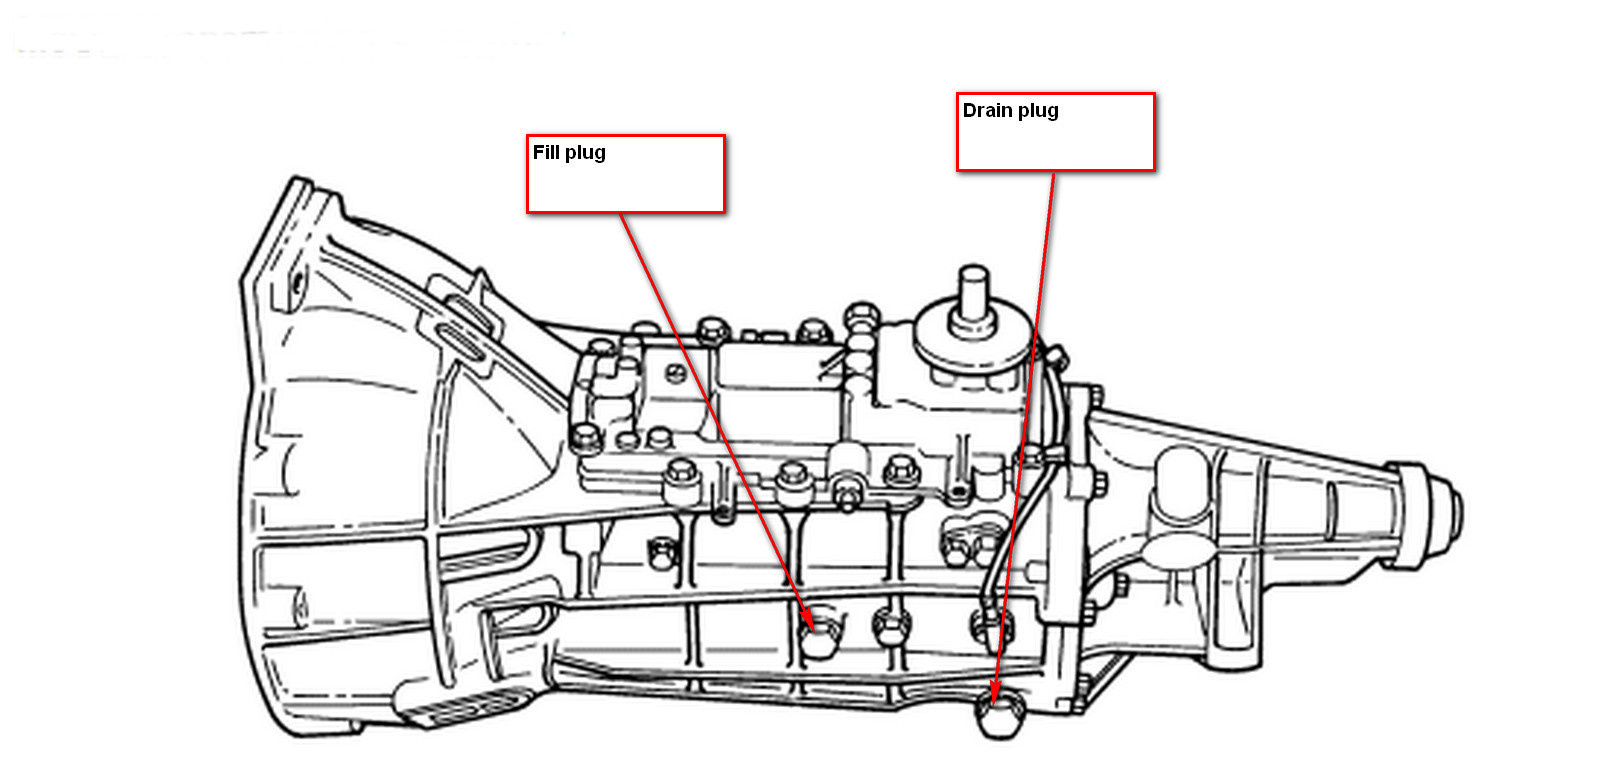 Toyota pickup manual transmission identification | Toyota W56